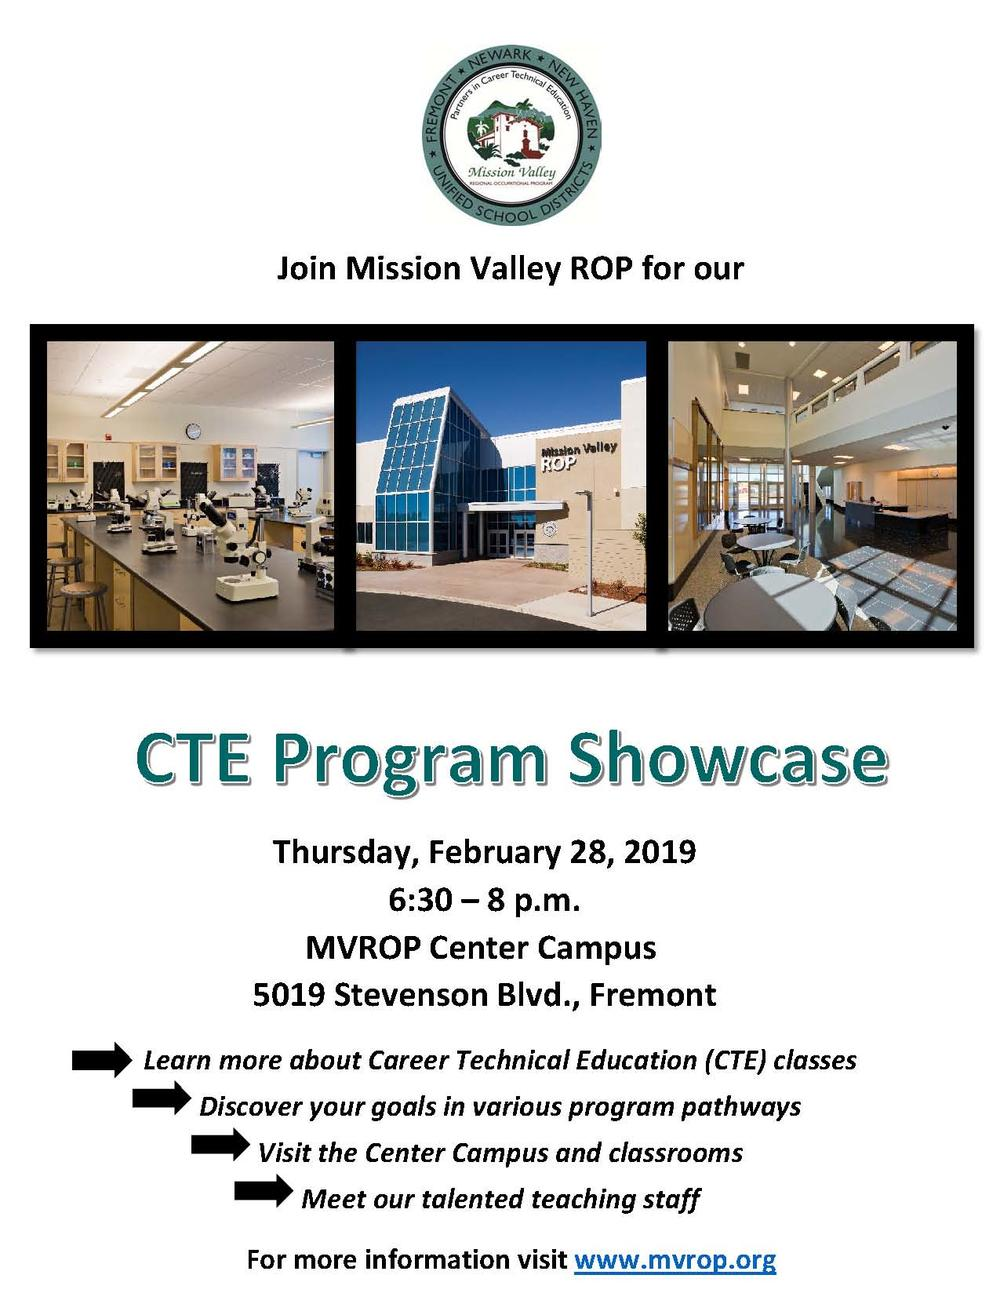 MVROP Program Showcase